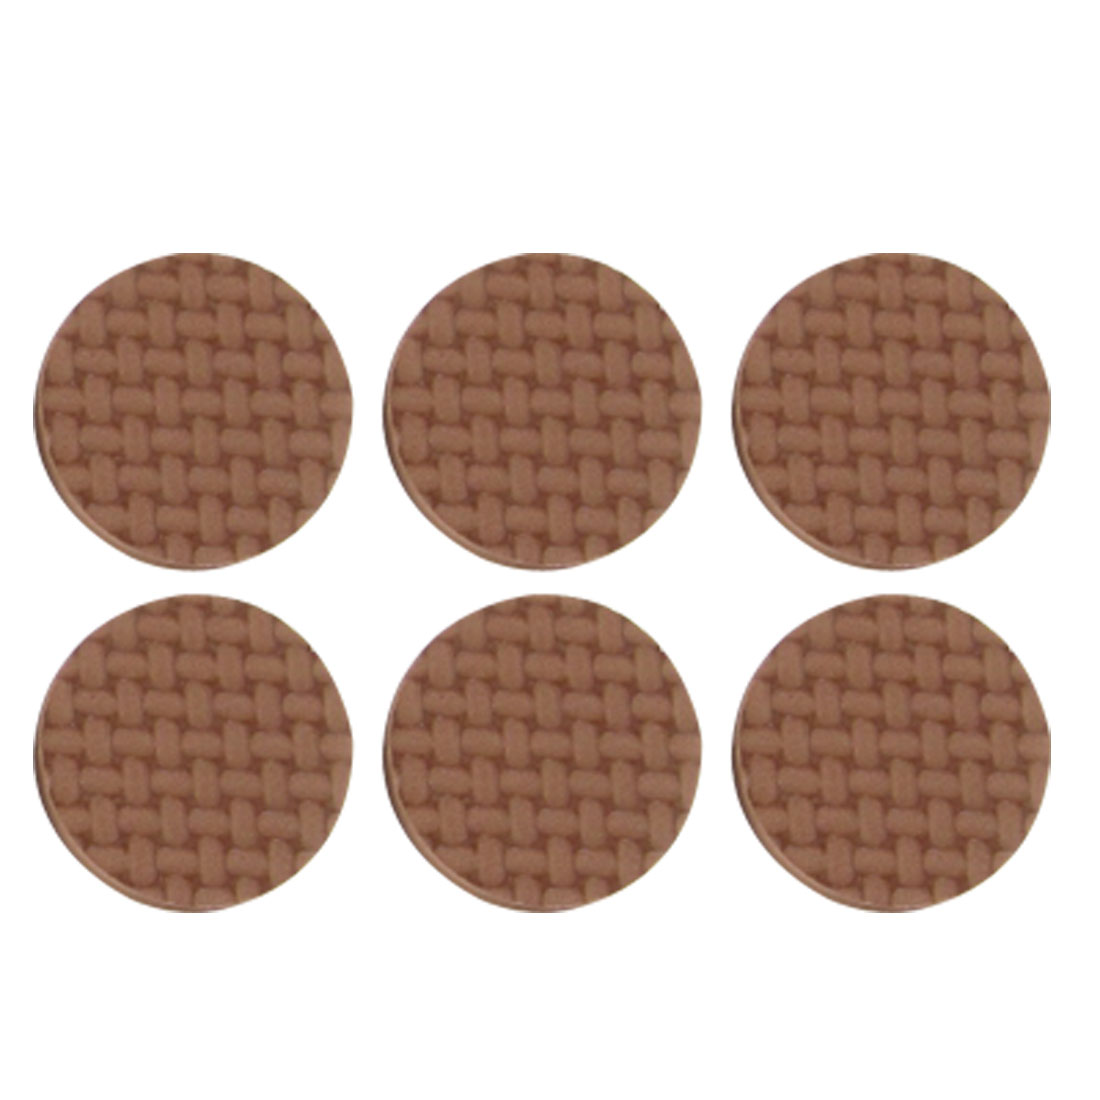 "Furniture 1"" Diameter Round Nonslip Brown Protection Pad Mat 18 Pcs"